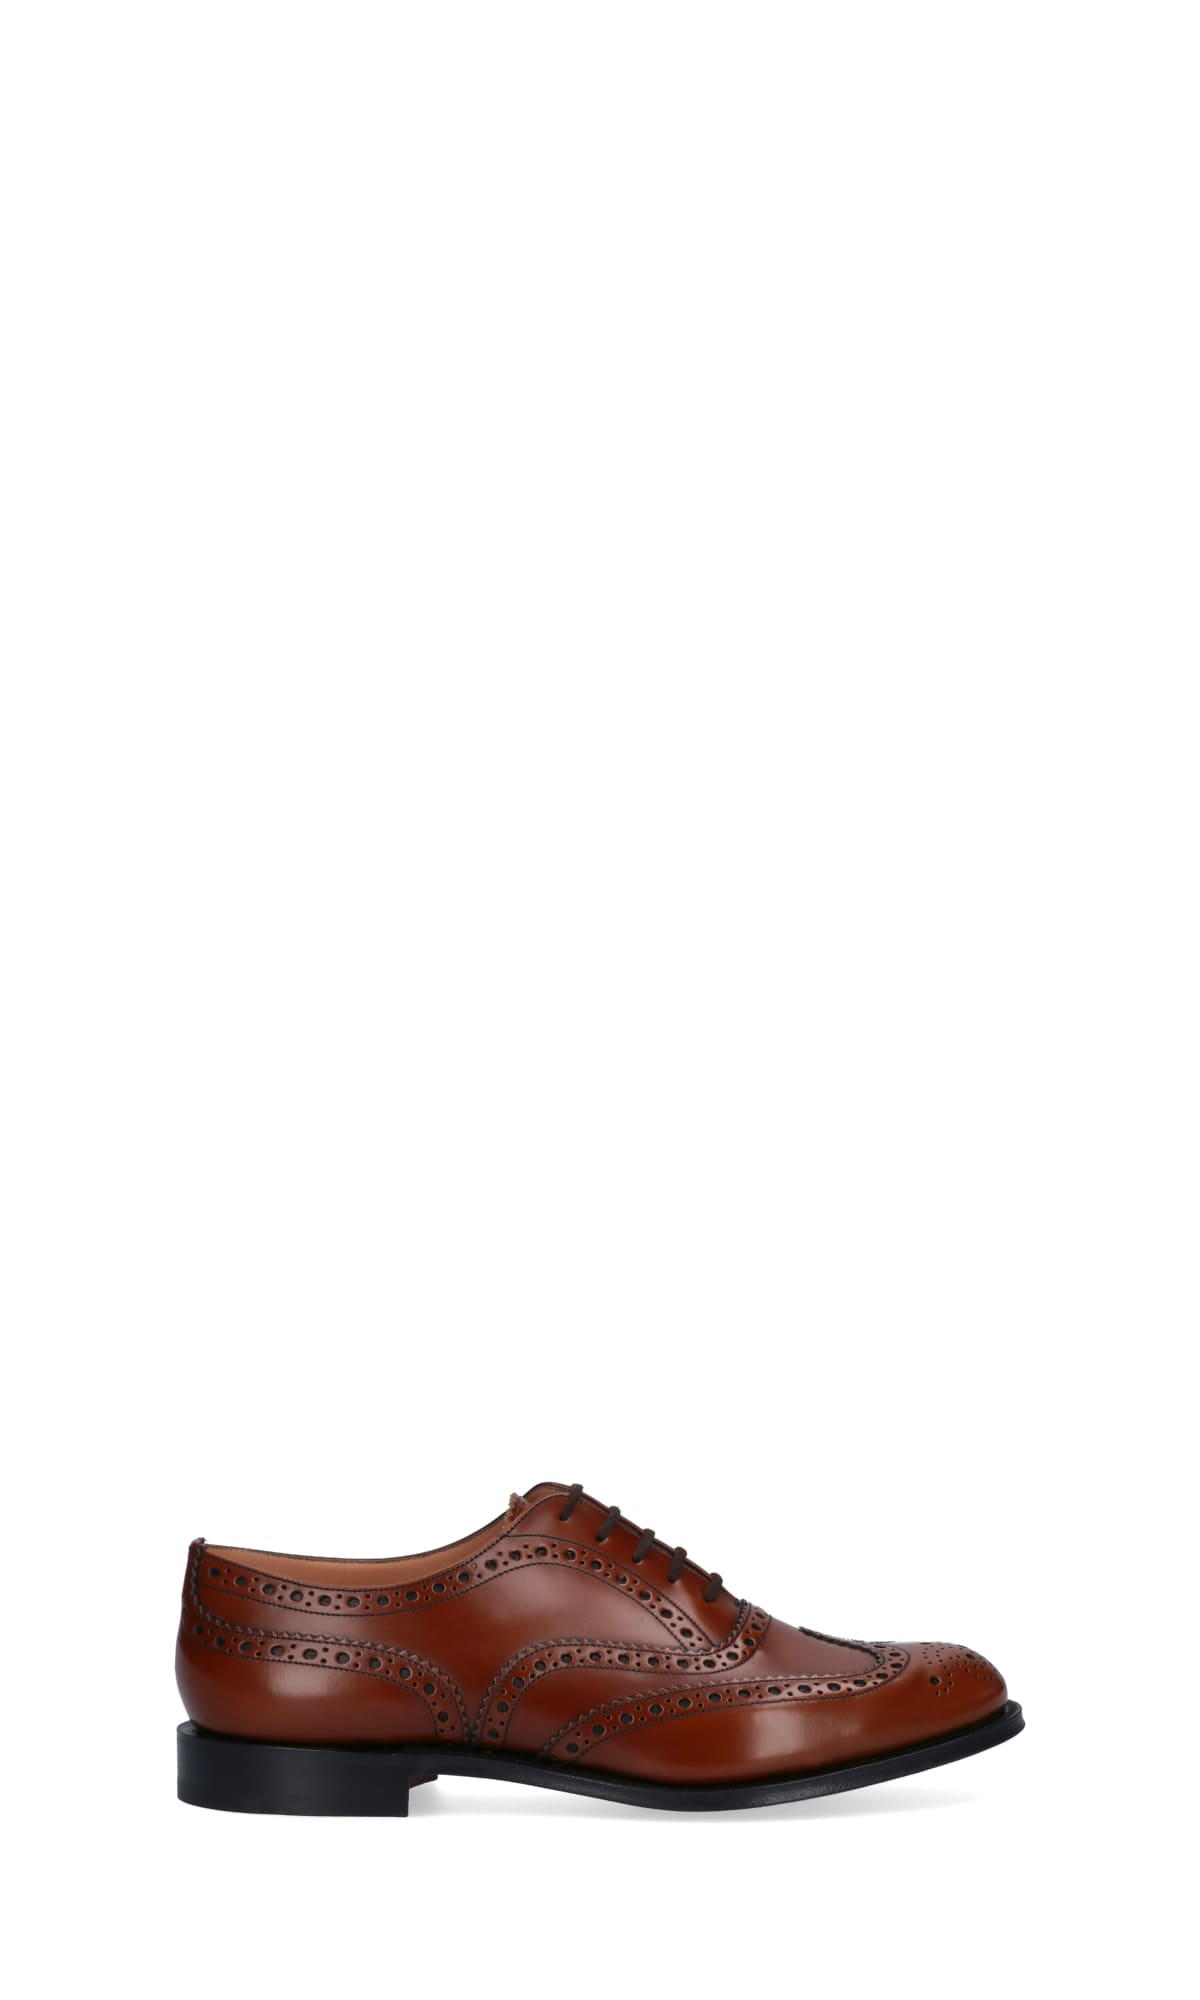 Church's OXFORD BROGUE SHOES